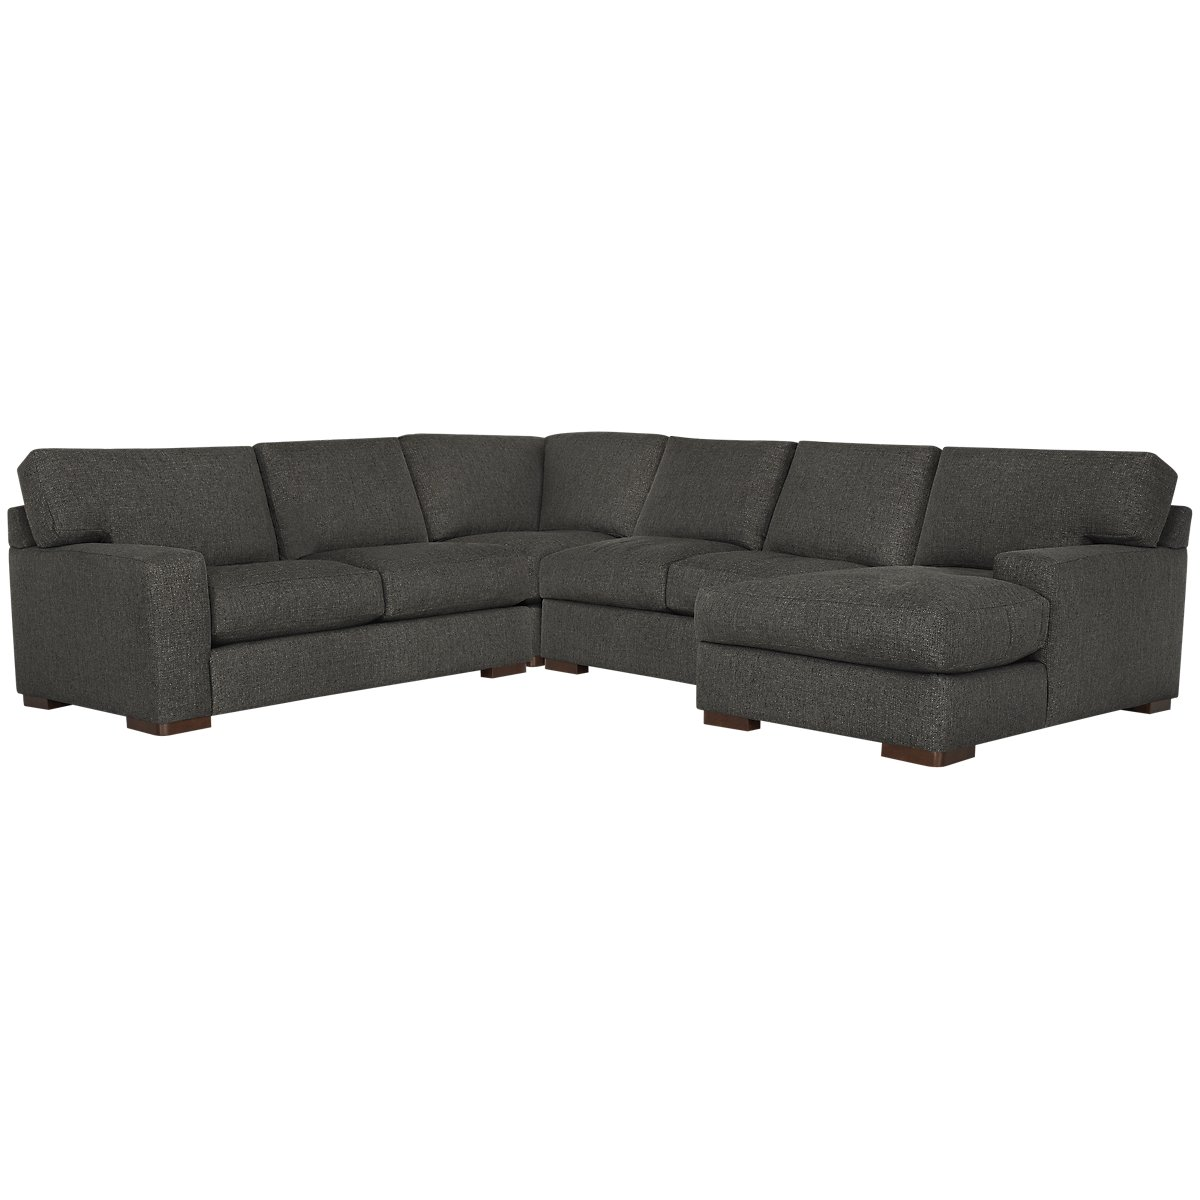 Veronica Dark Brown Down Medium Right Chaise Sectional